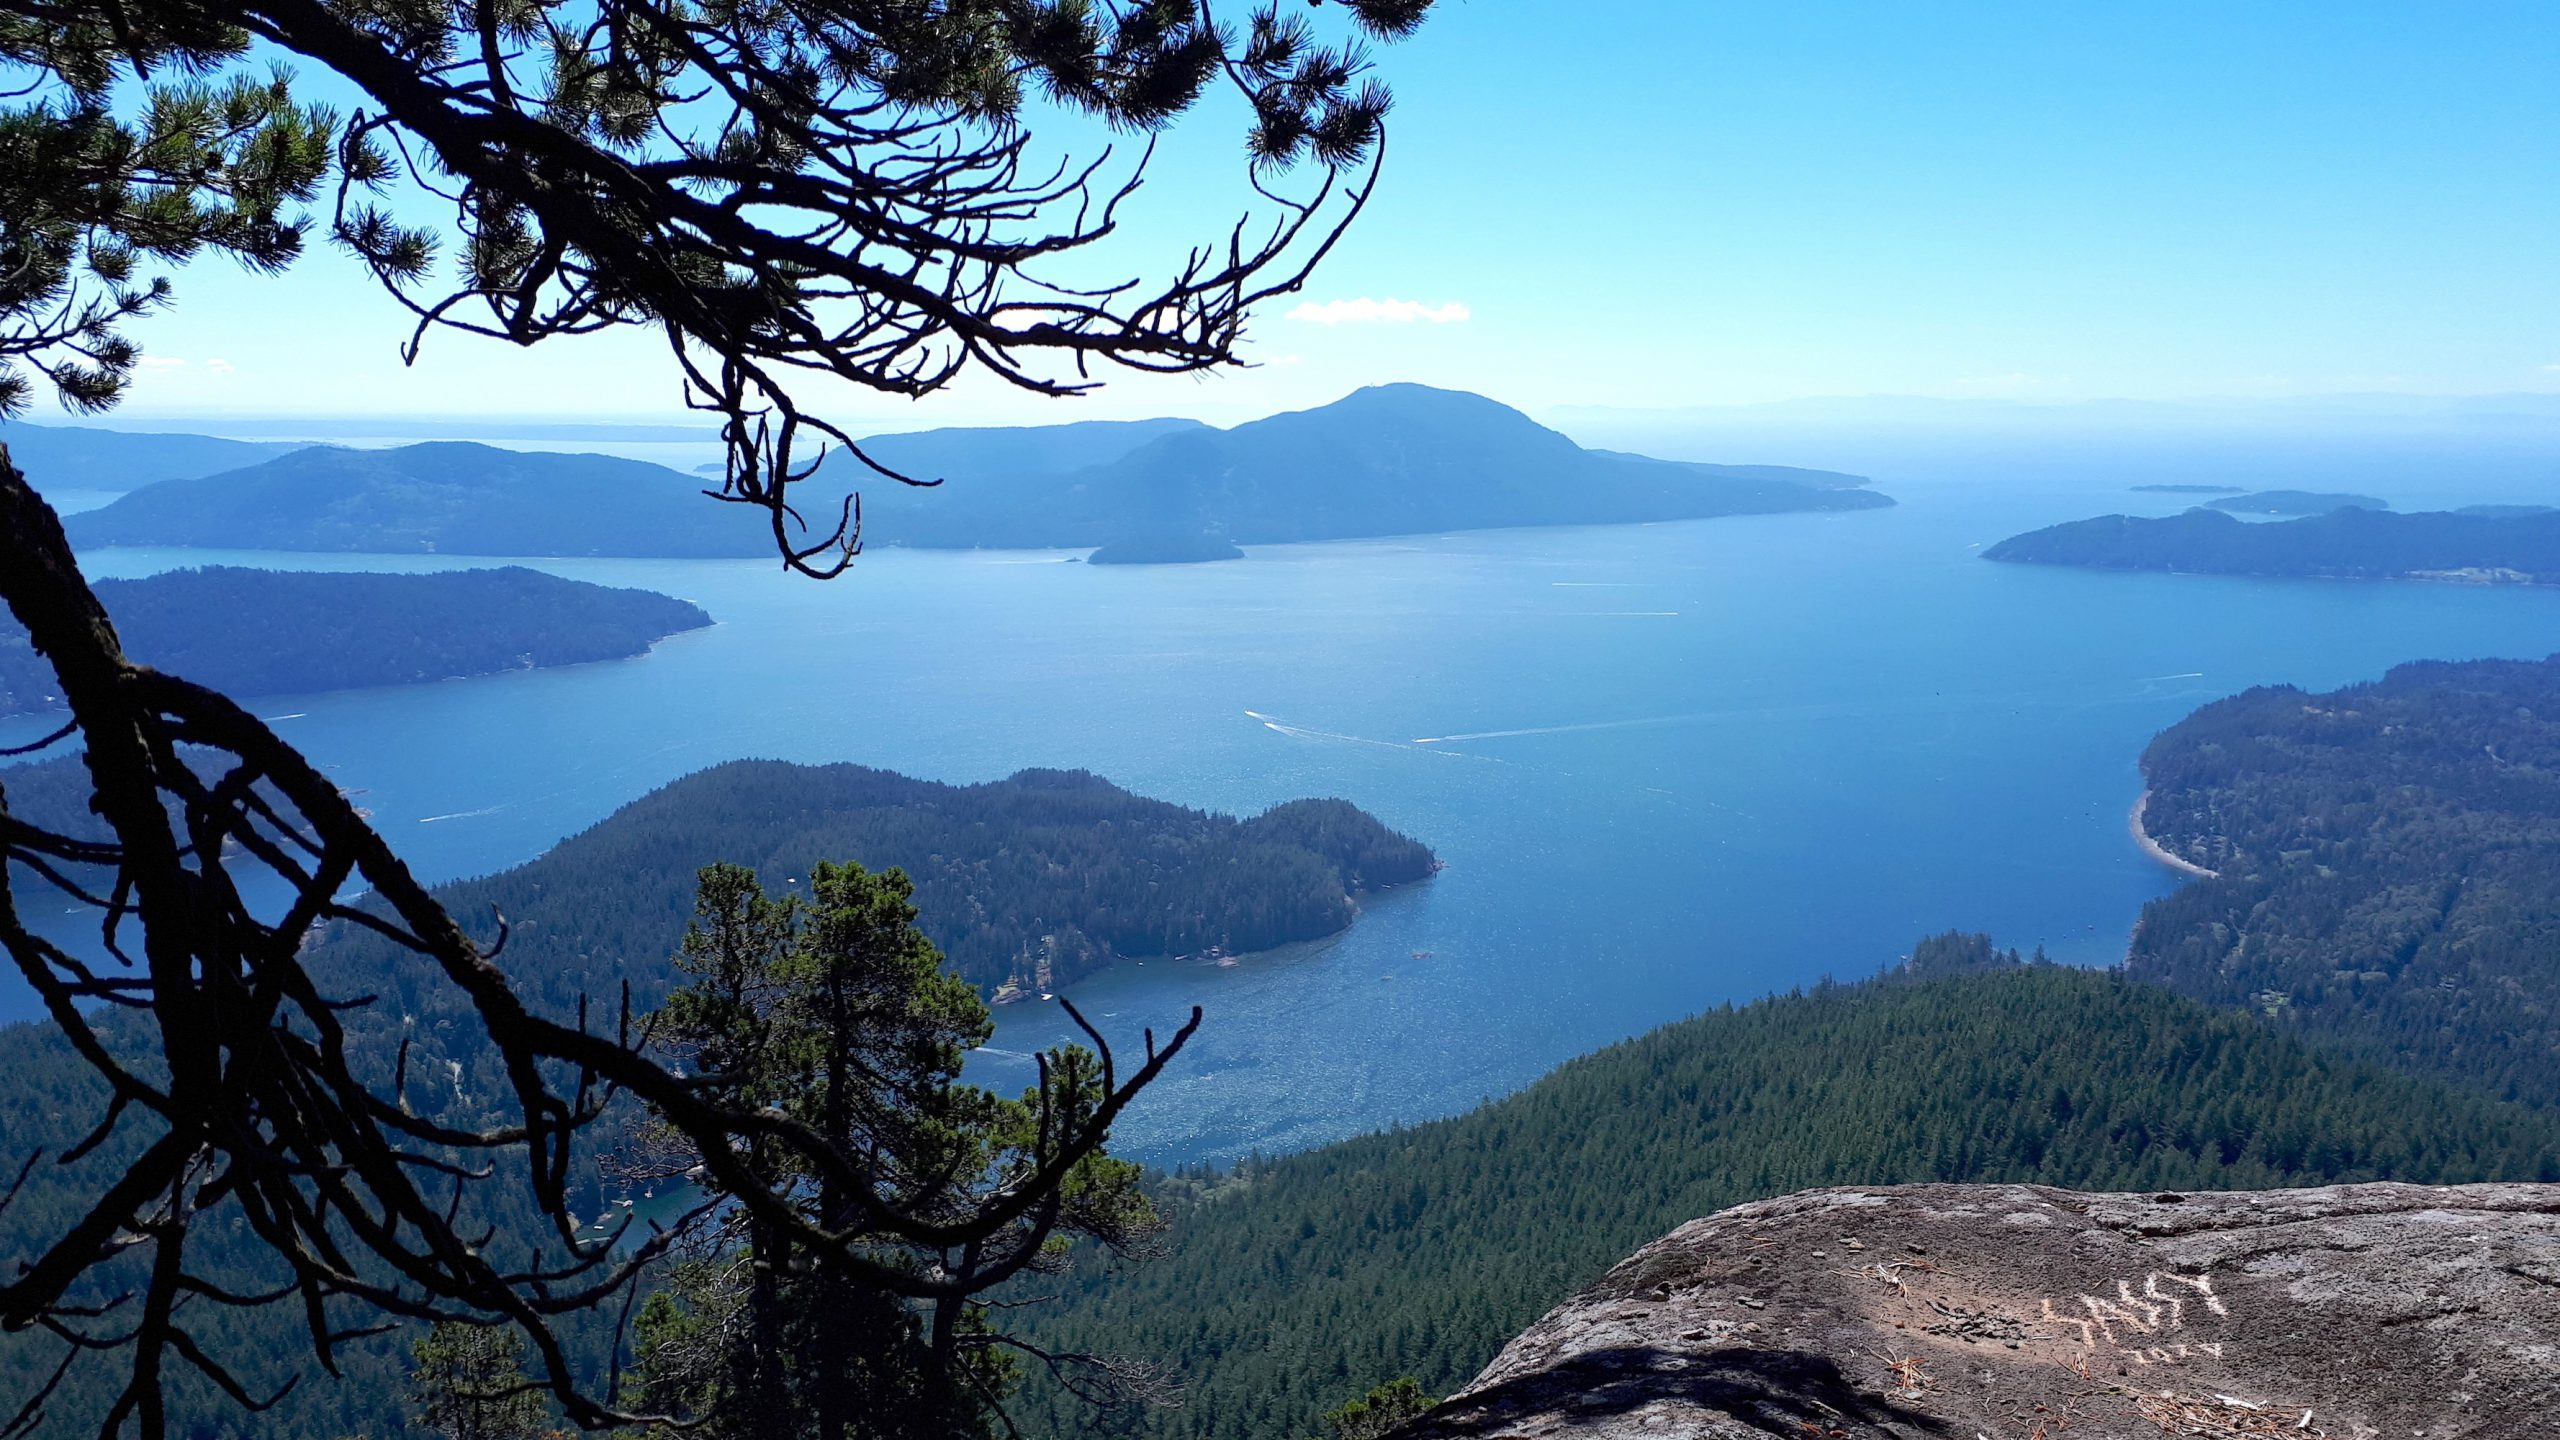 View from Mount Killam on Gambier Island. Photo by Donna McMahon